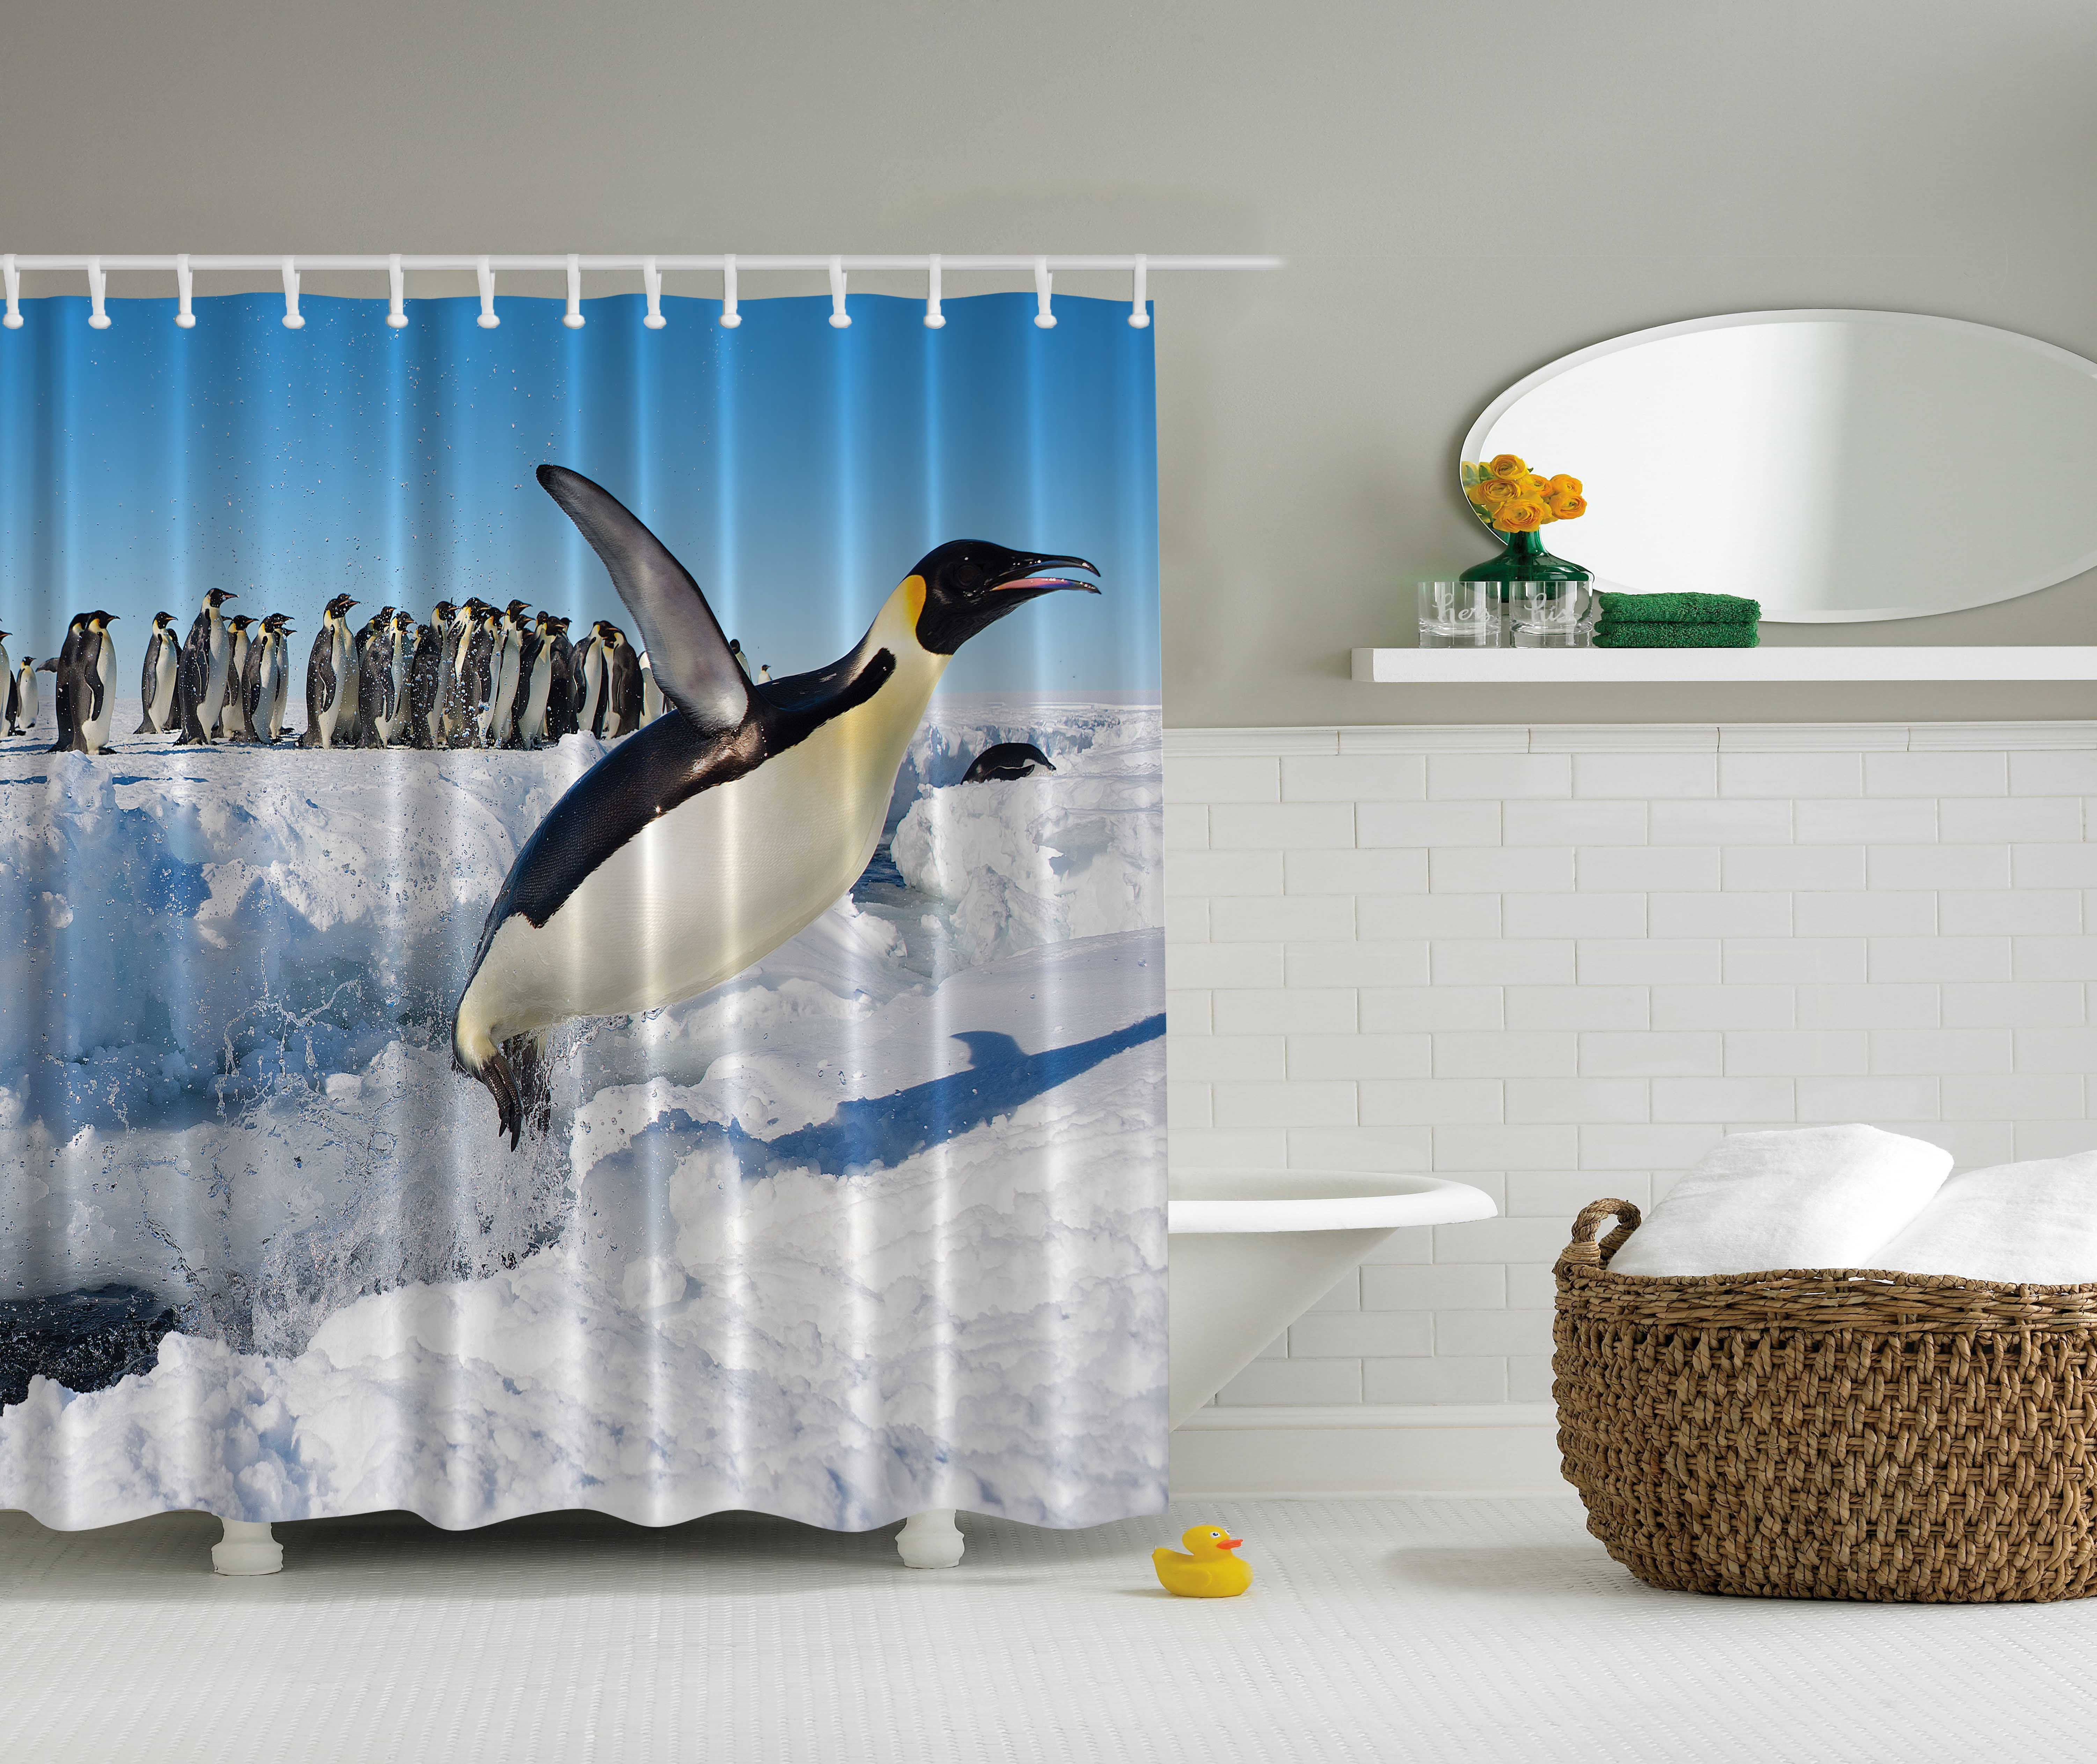 North wildlife swimming fly dancing penguin family bird Swimming pool shower curtain